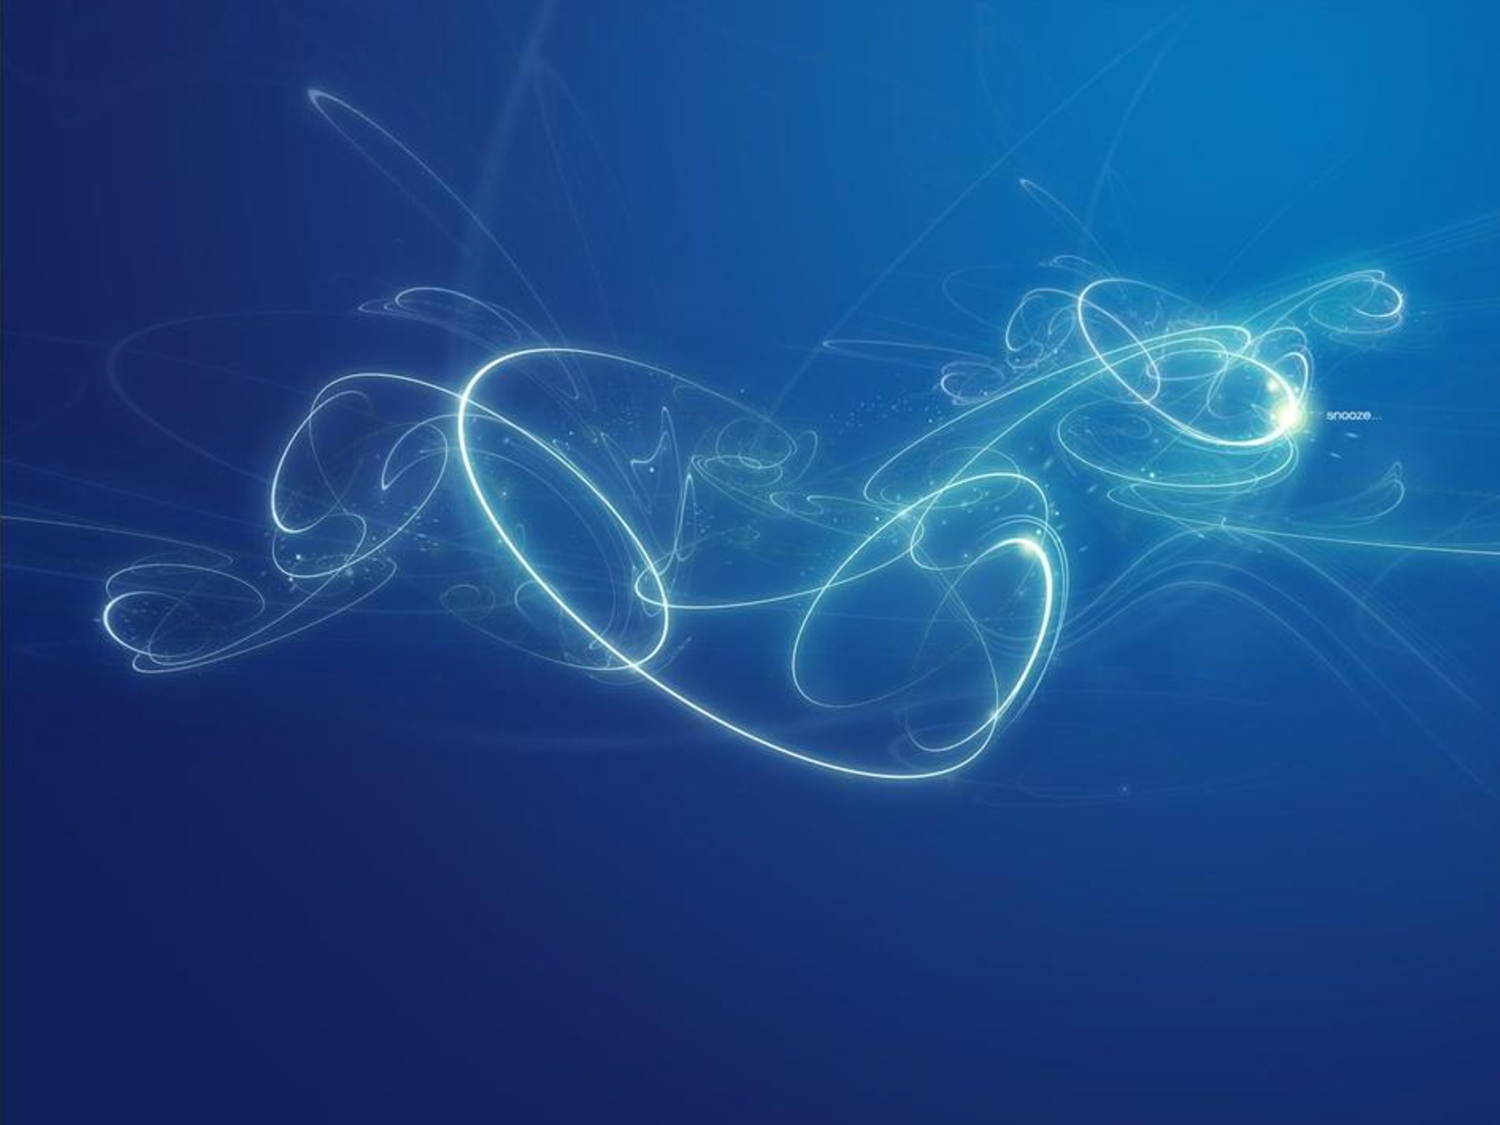 Electric Blue Powerpoint Stater Background Template Images   Frompo 1500x1125